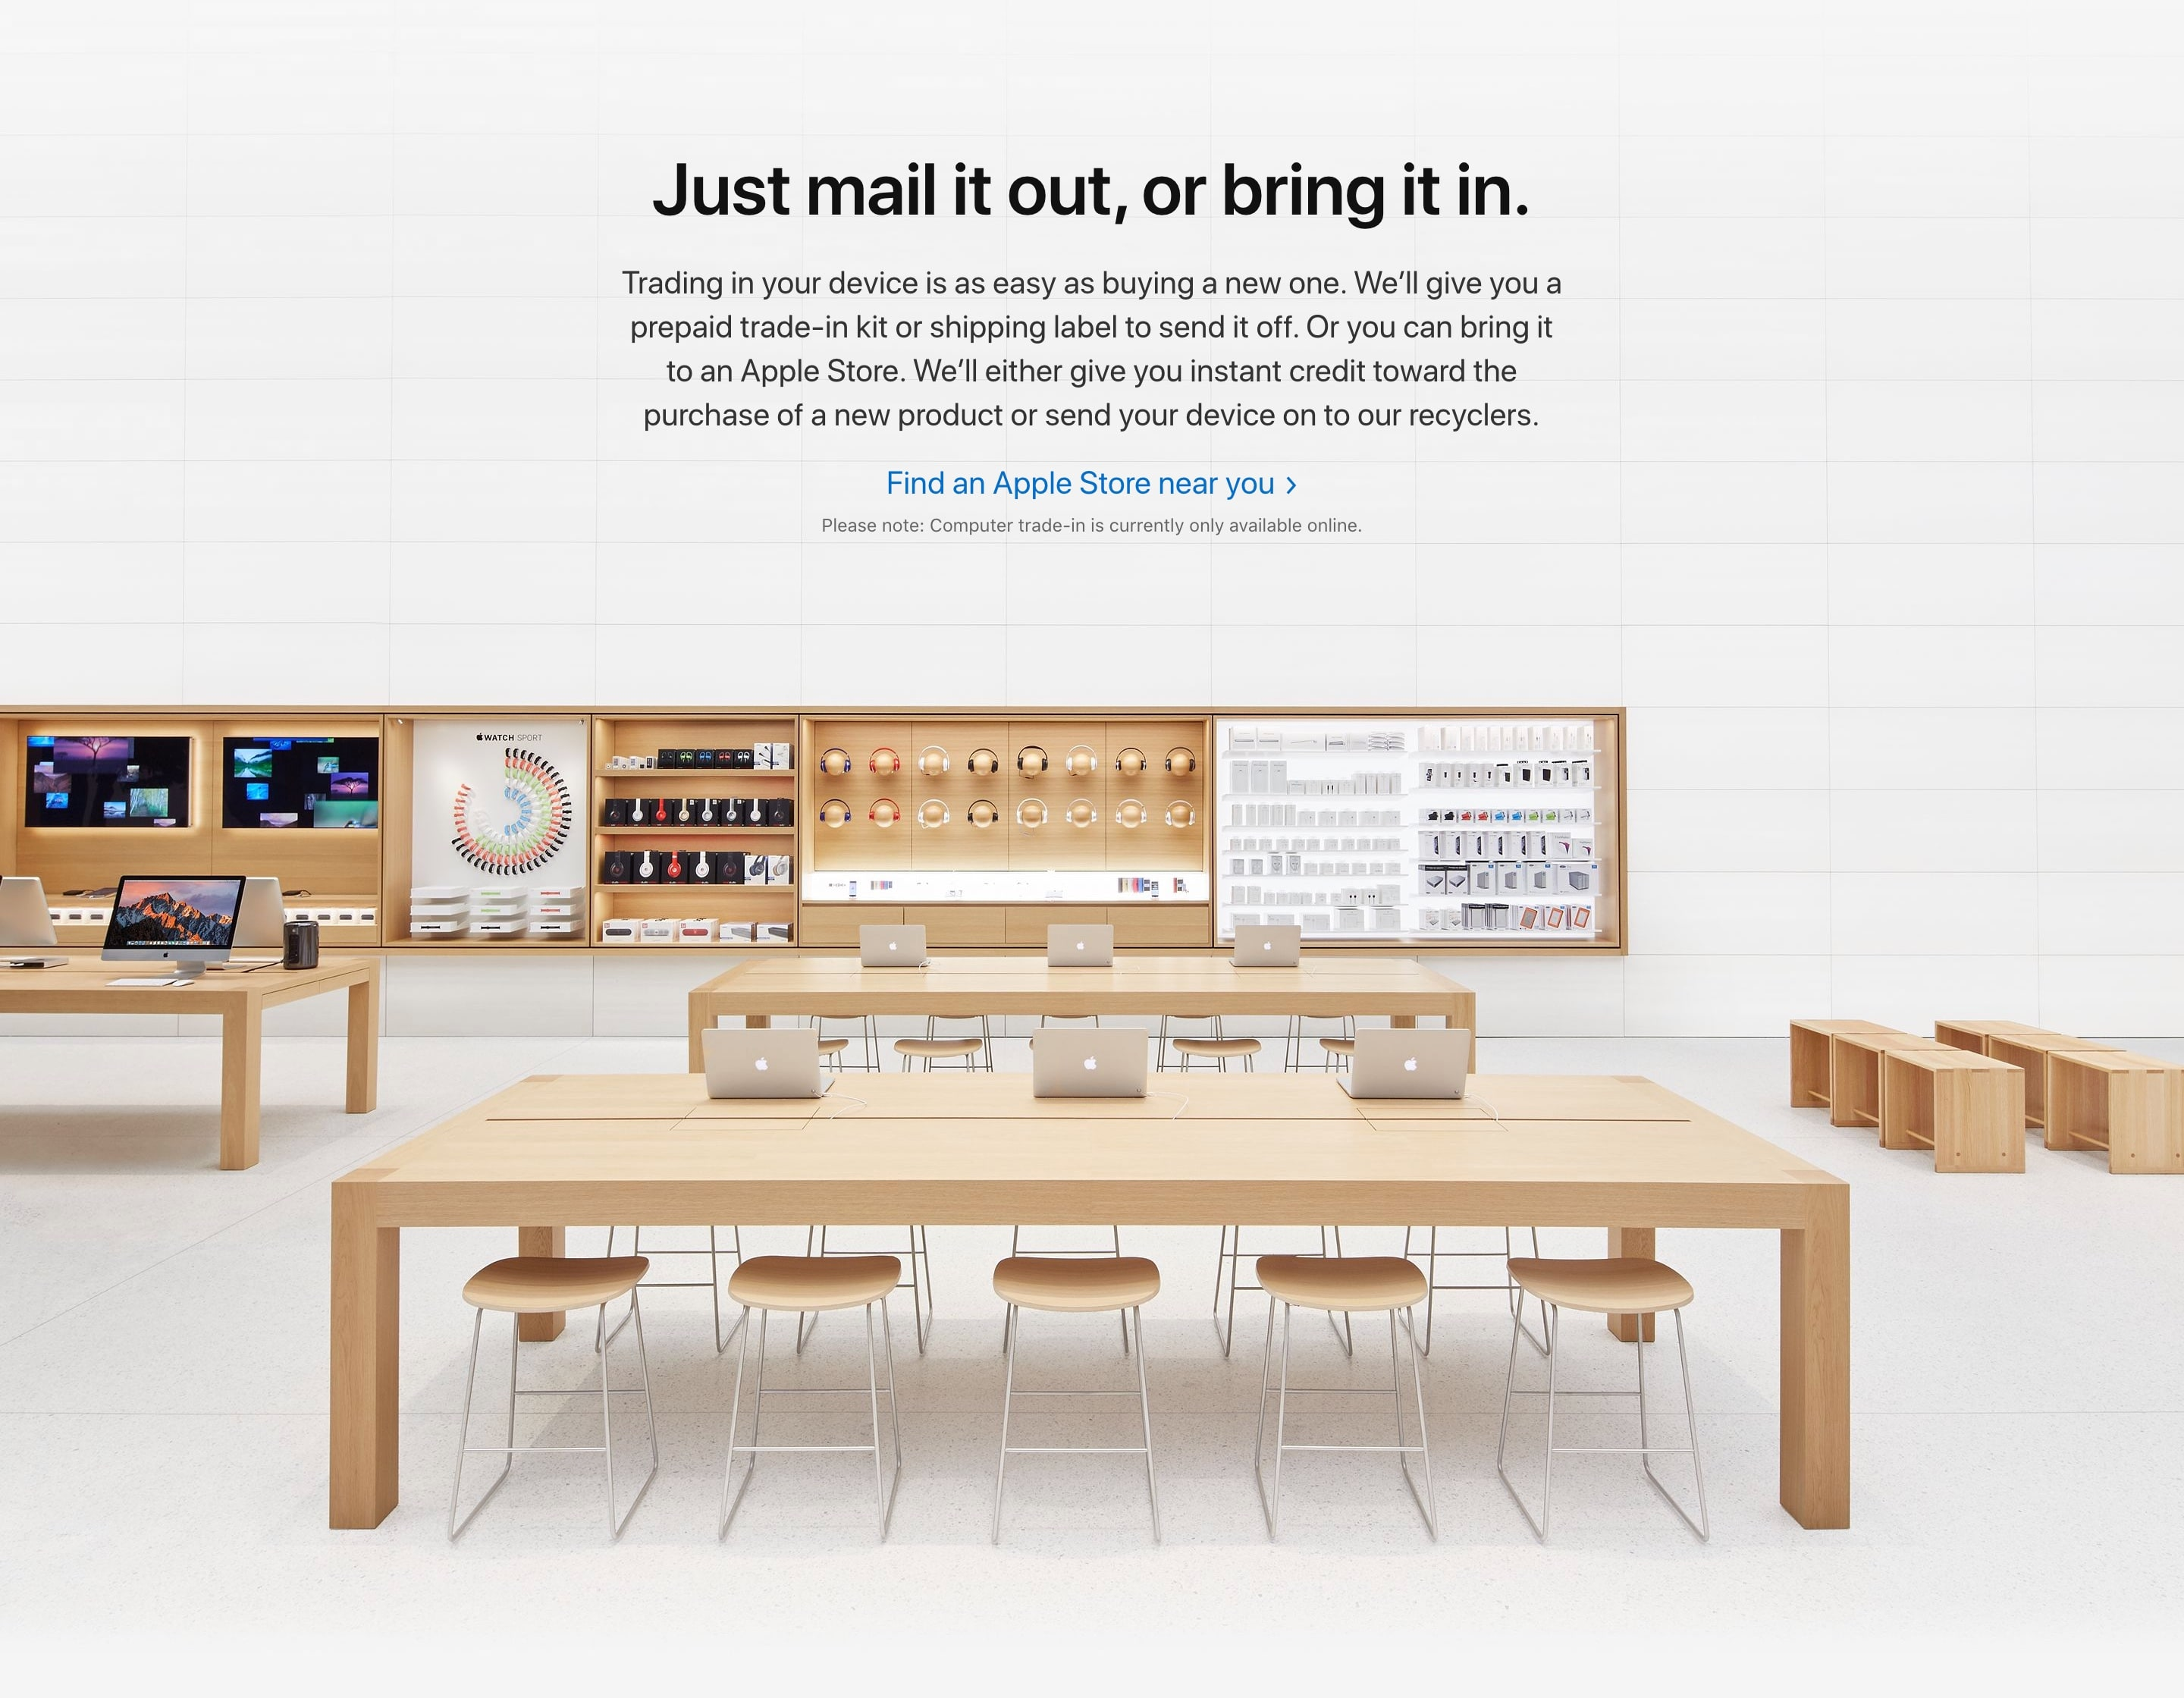 Near Retail Stores with Full-Width Image